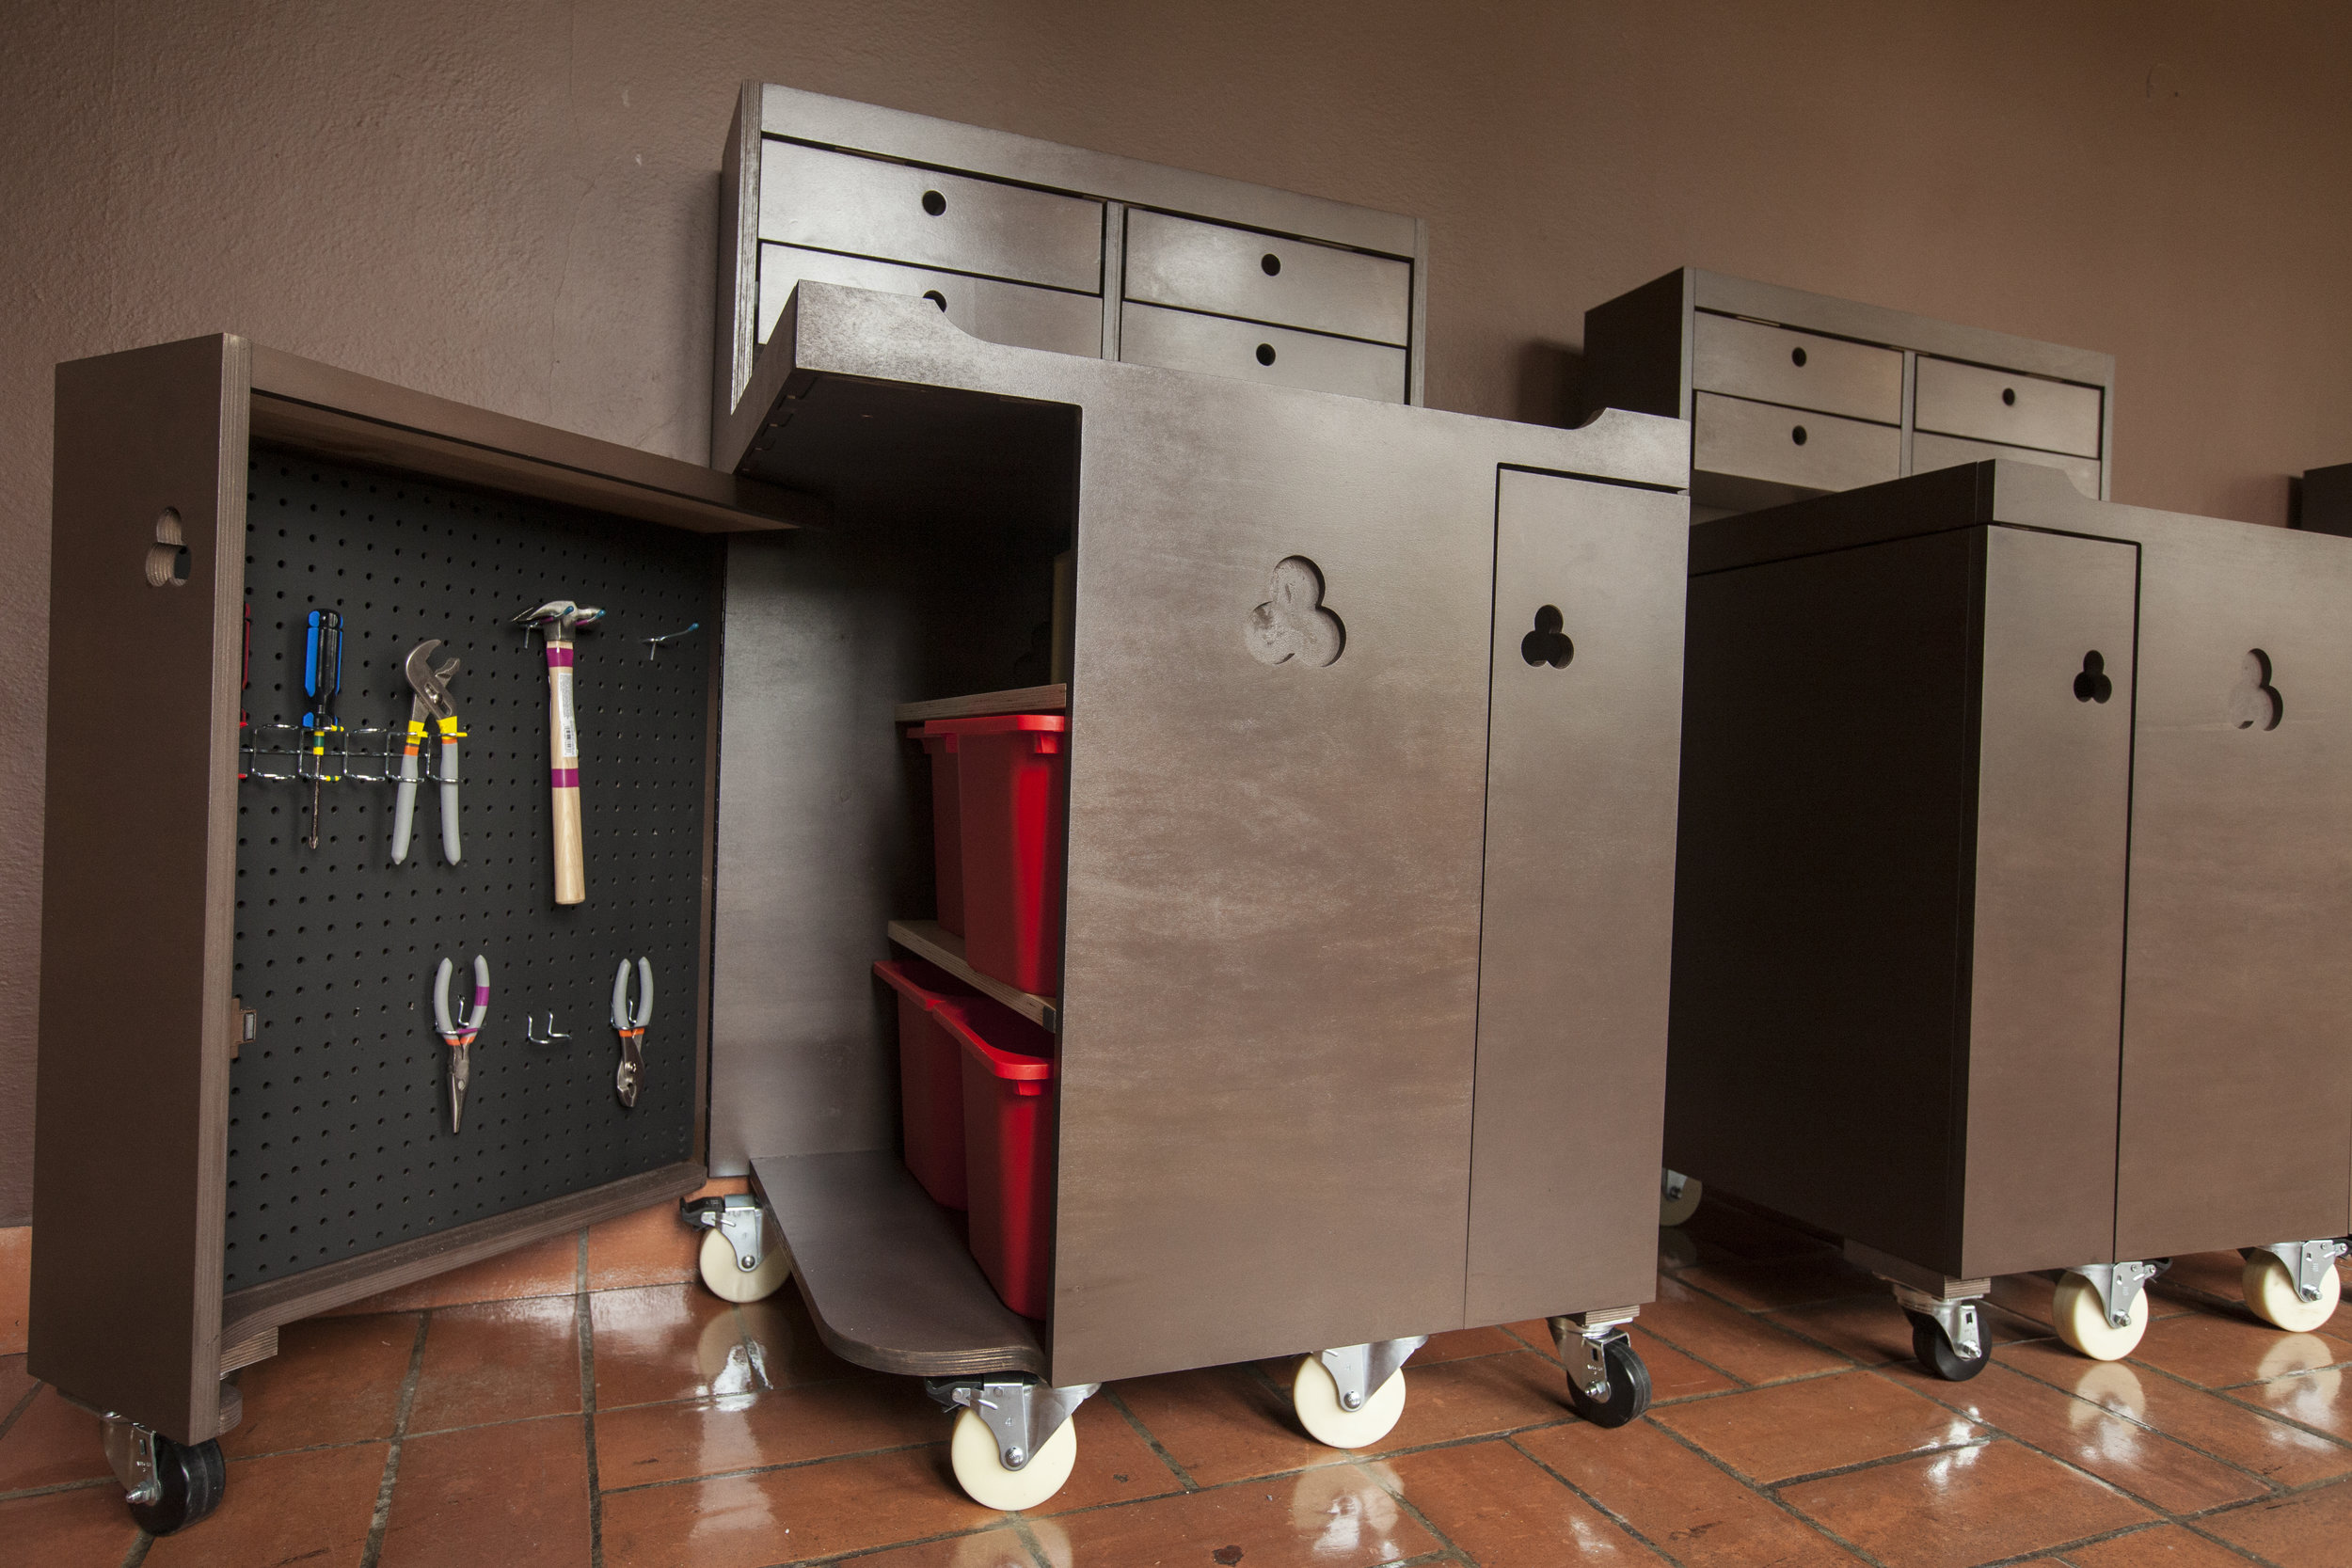 The doors open completely to allow access to the pegboard of tools, the white board for notes, and the central cavity with ample storage for projects and parts.